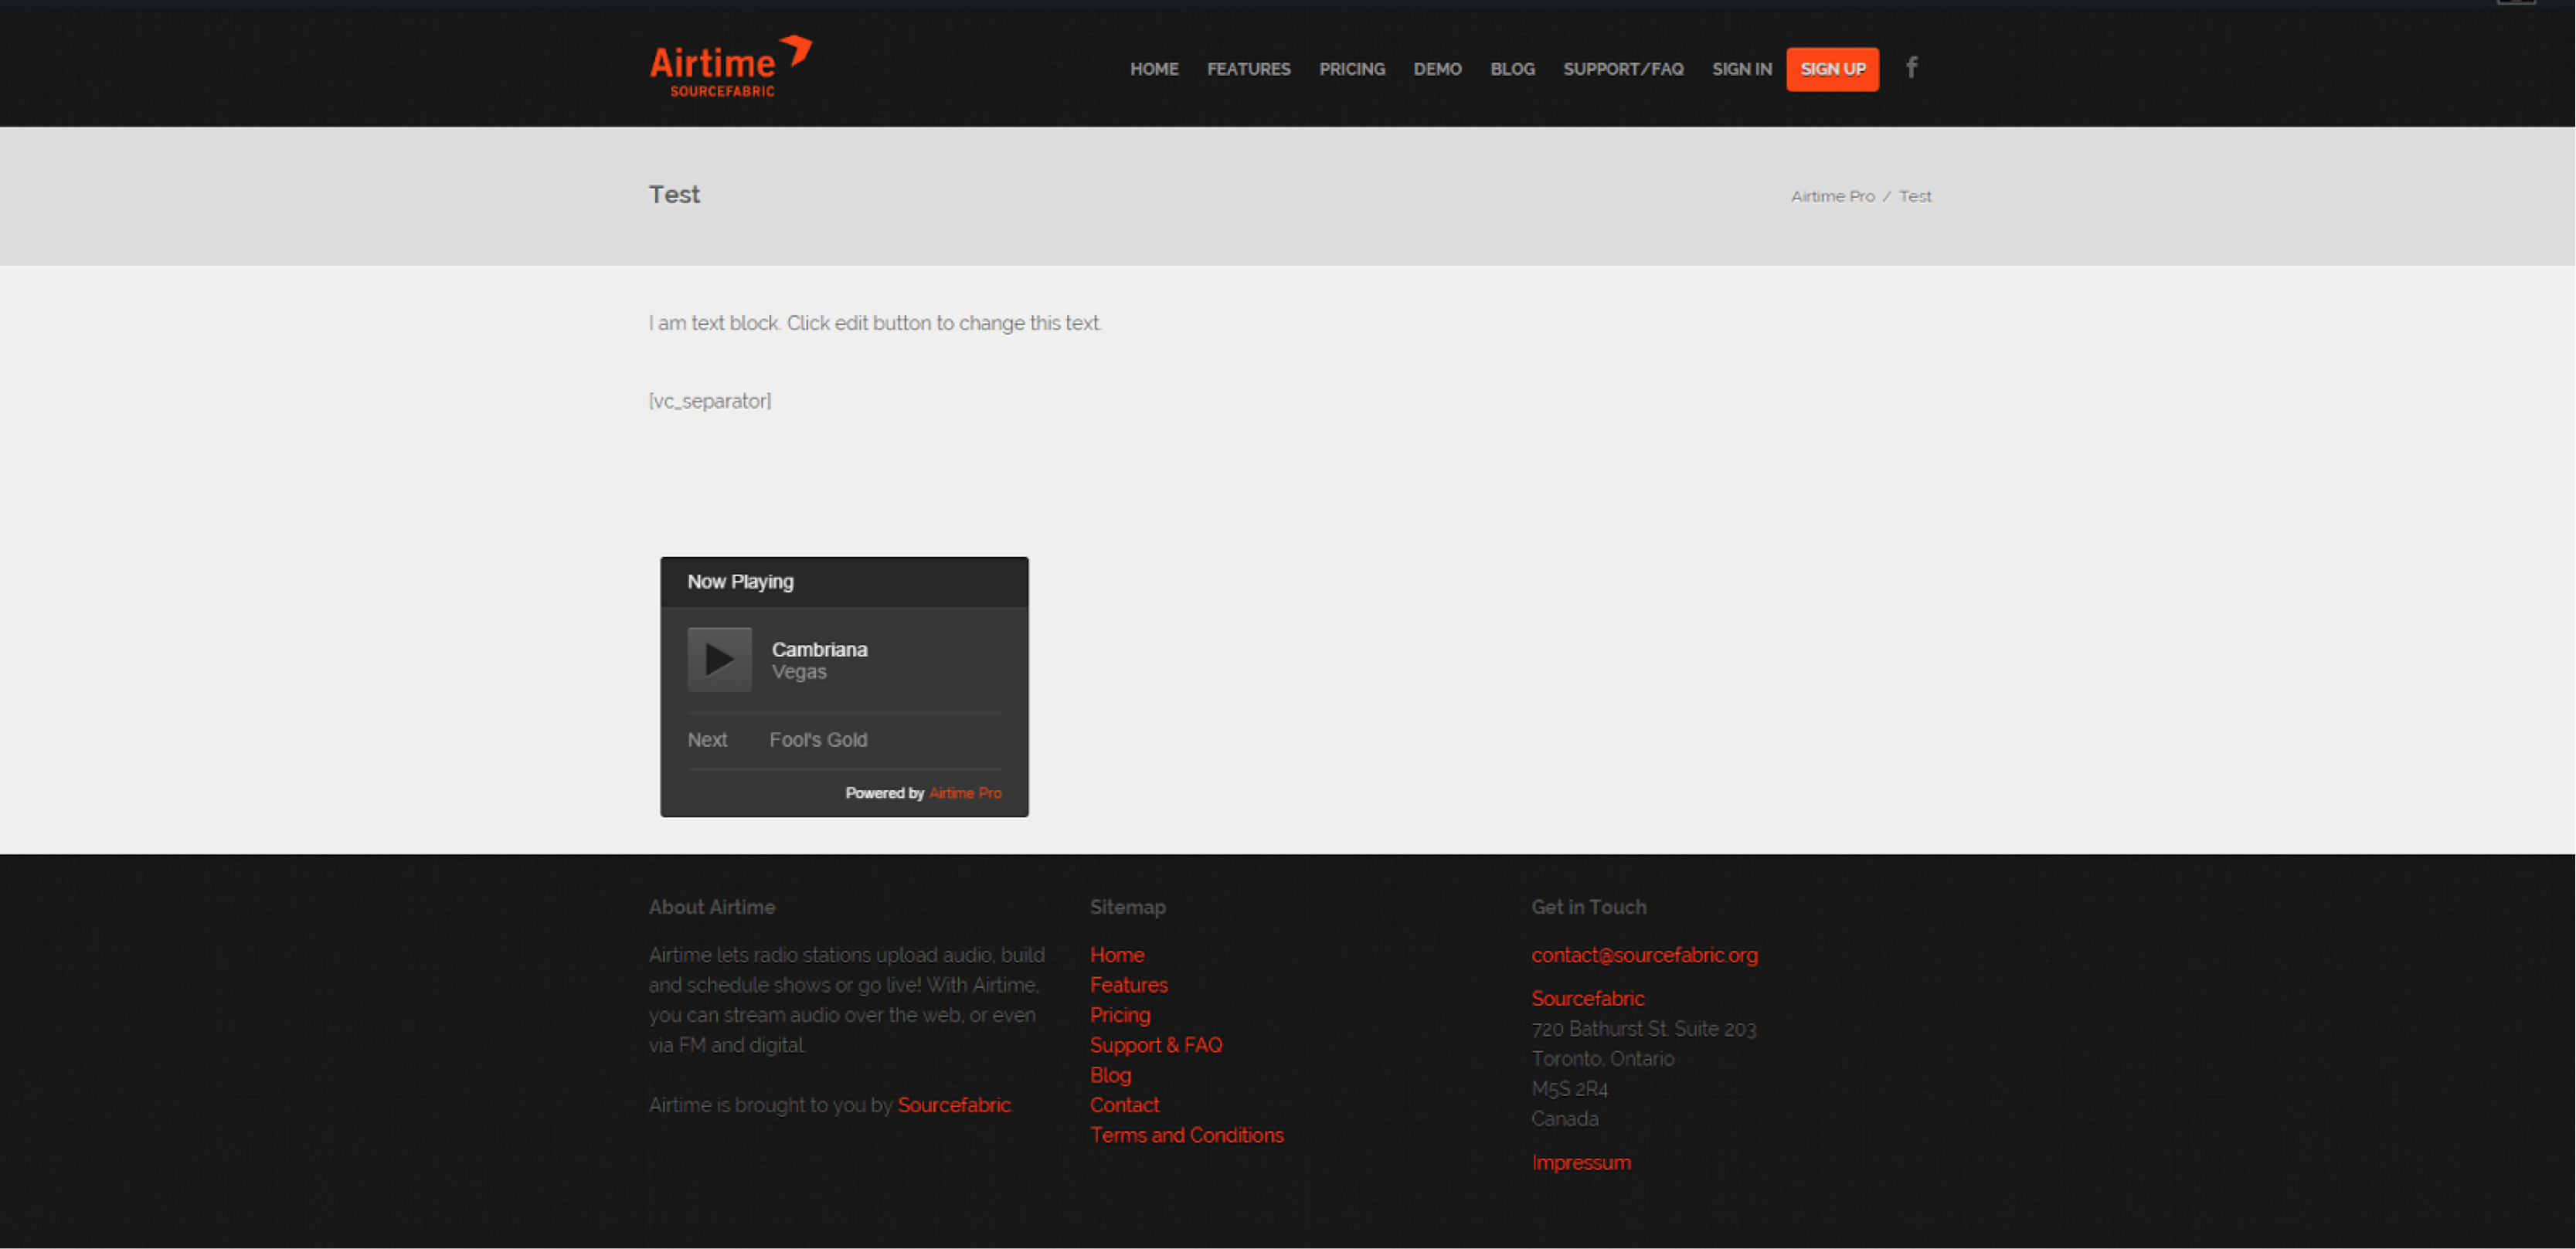 Airtime Pro player embedded on a Wordpress site.